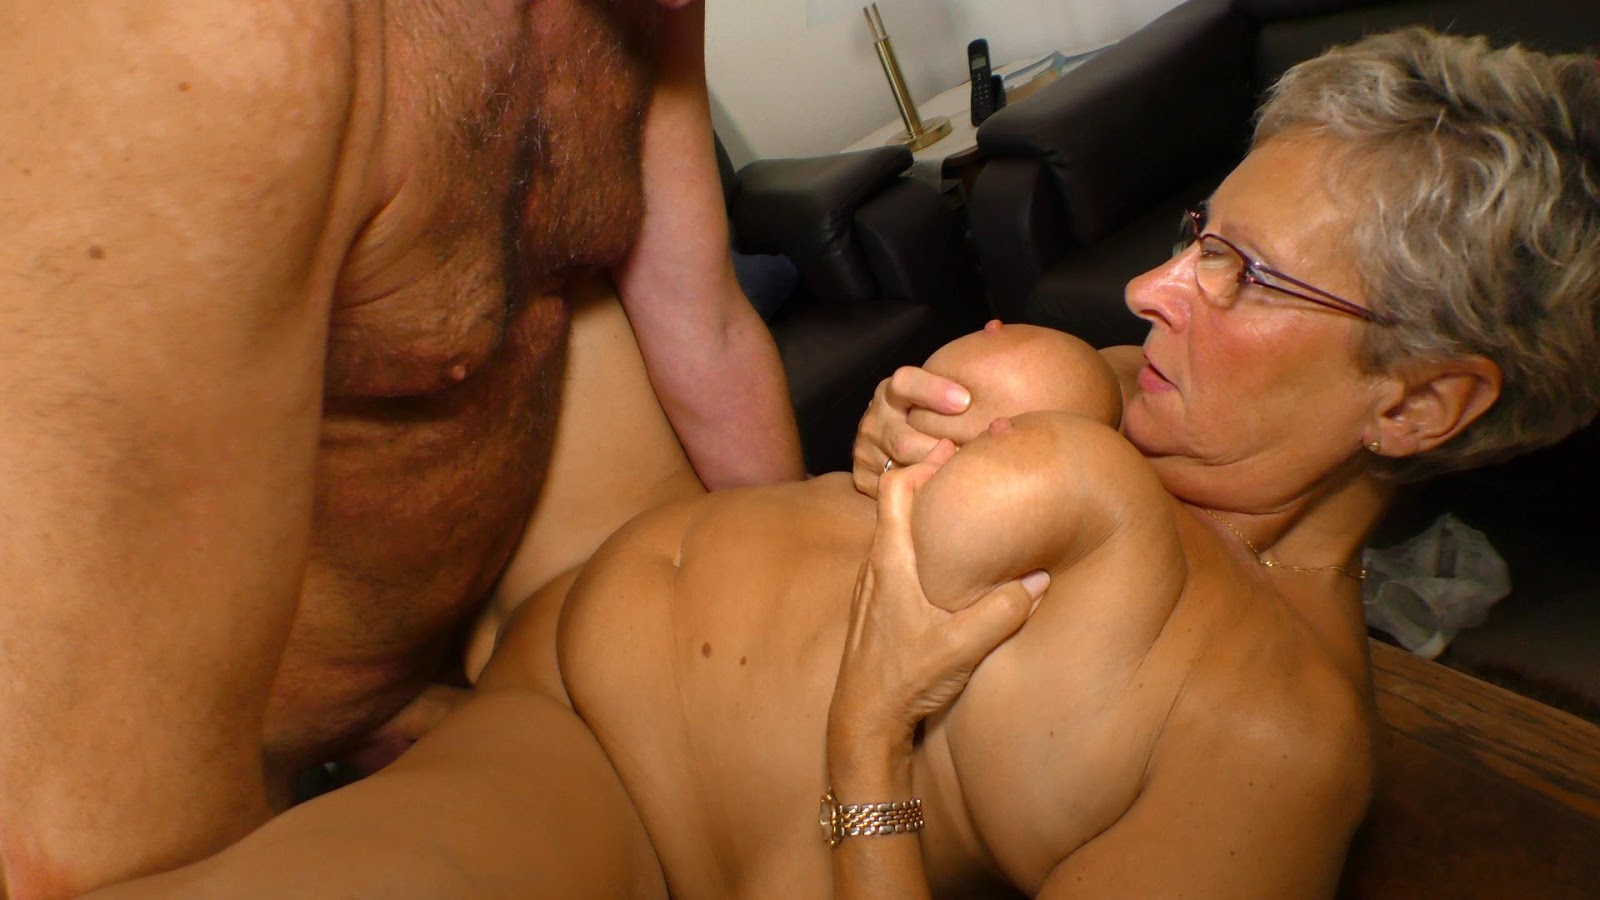 Mature women threesome porn-7191